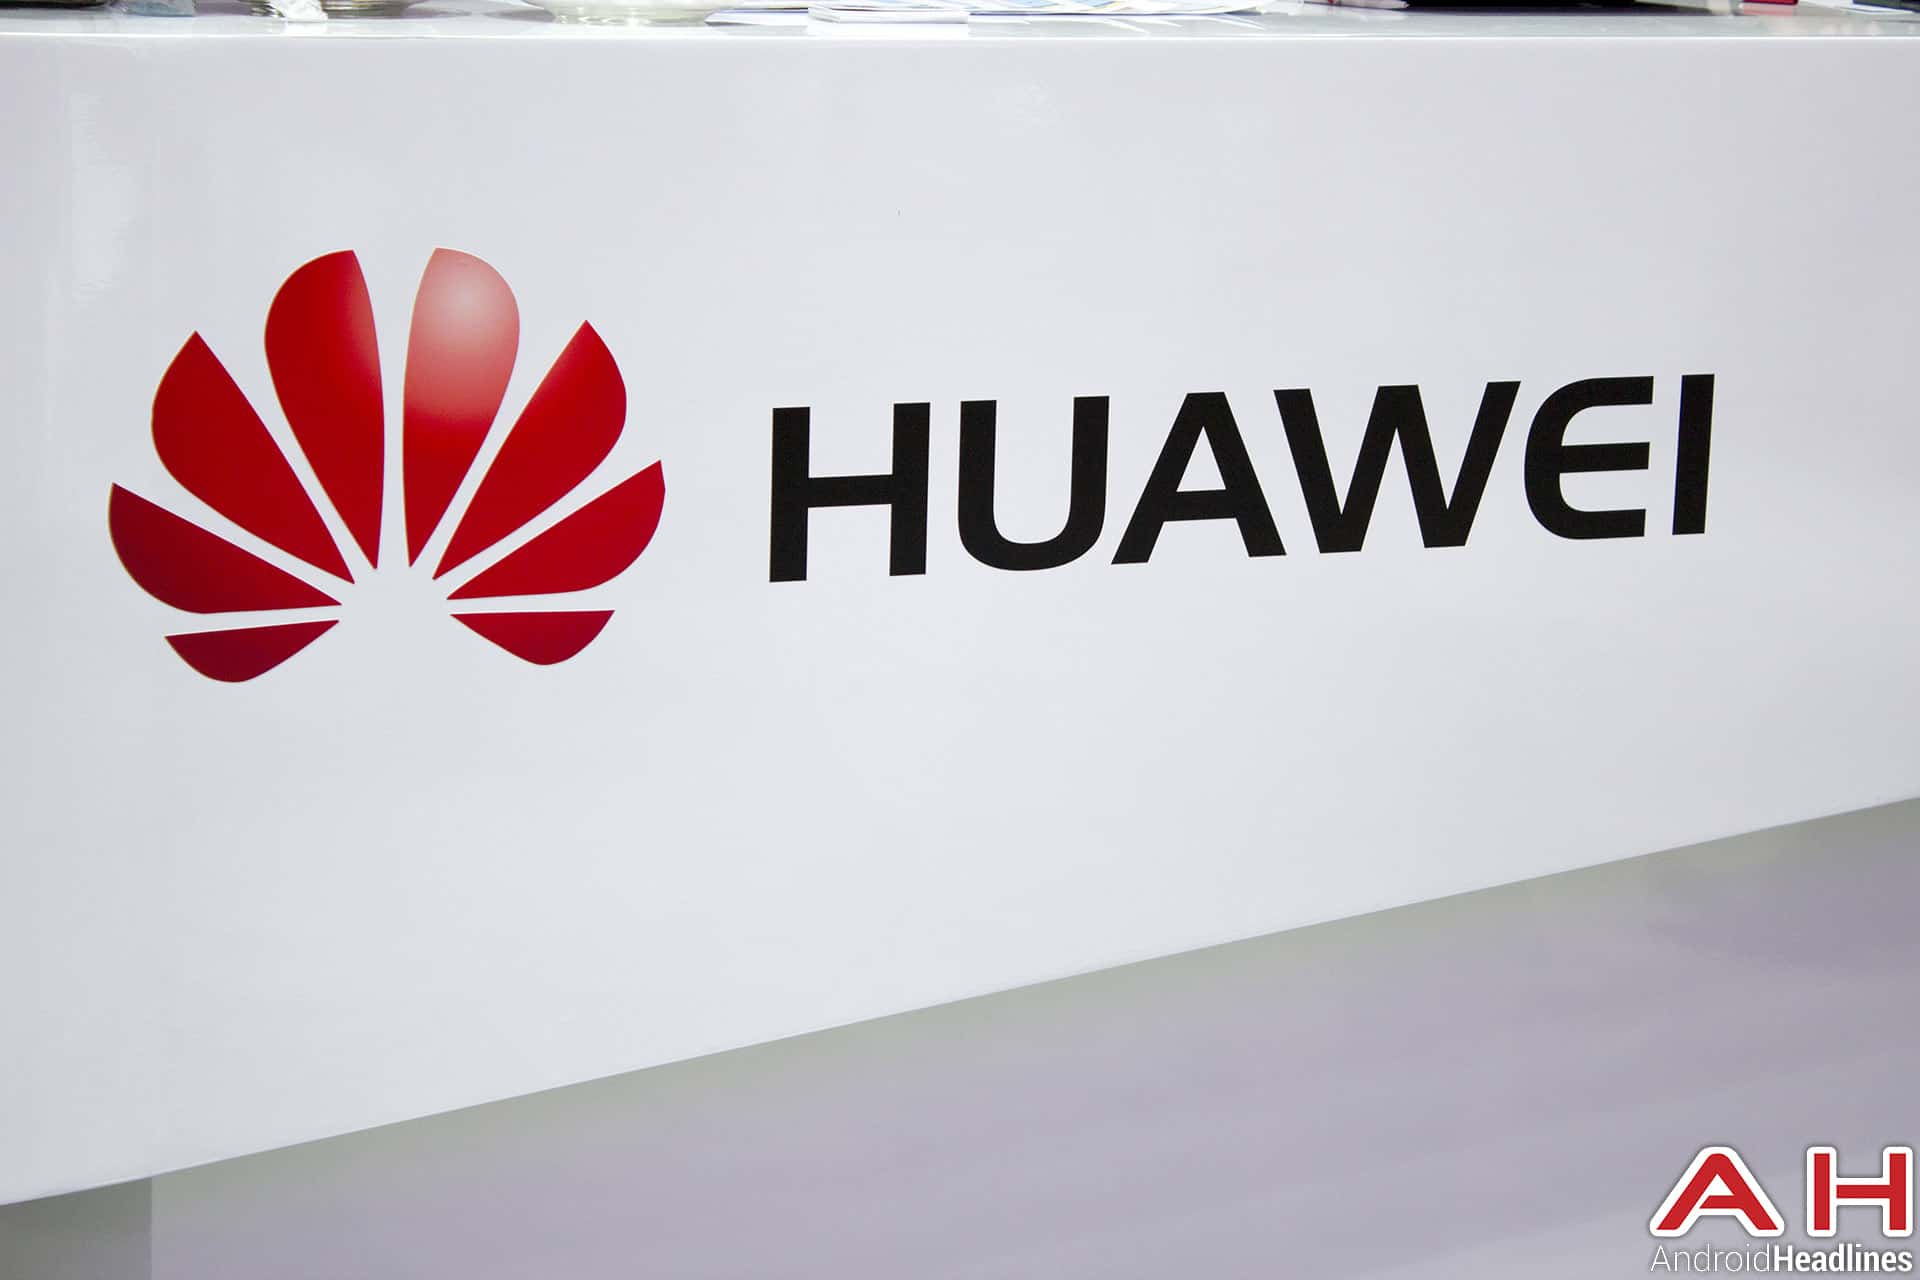 Rumor: Huawei Preparing Ascend Mate 7 Compact for Mobile World Congress | Drippler - Apps, Games, News, Updates & Accessories